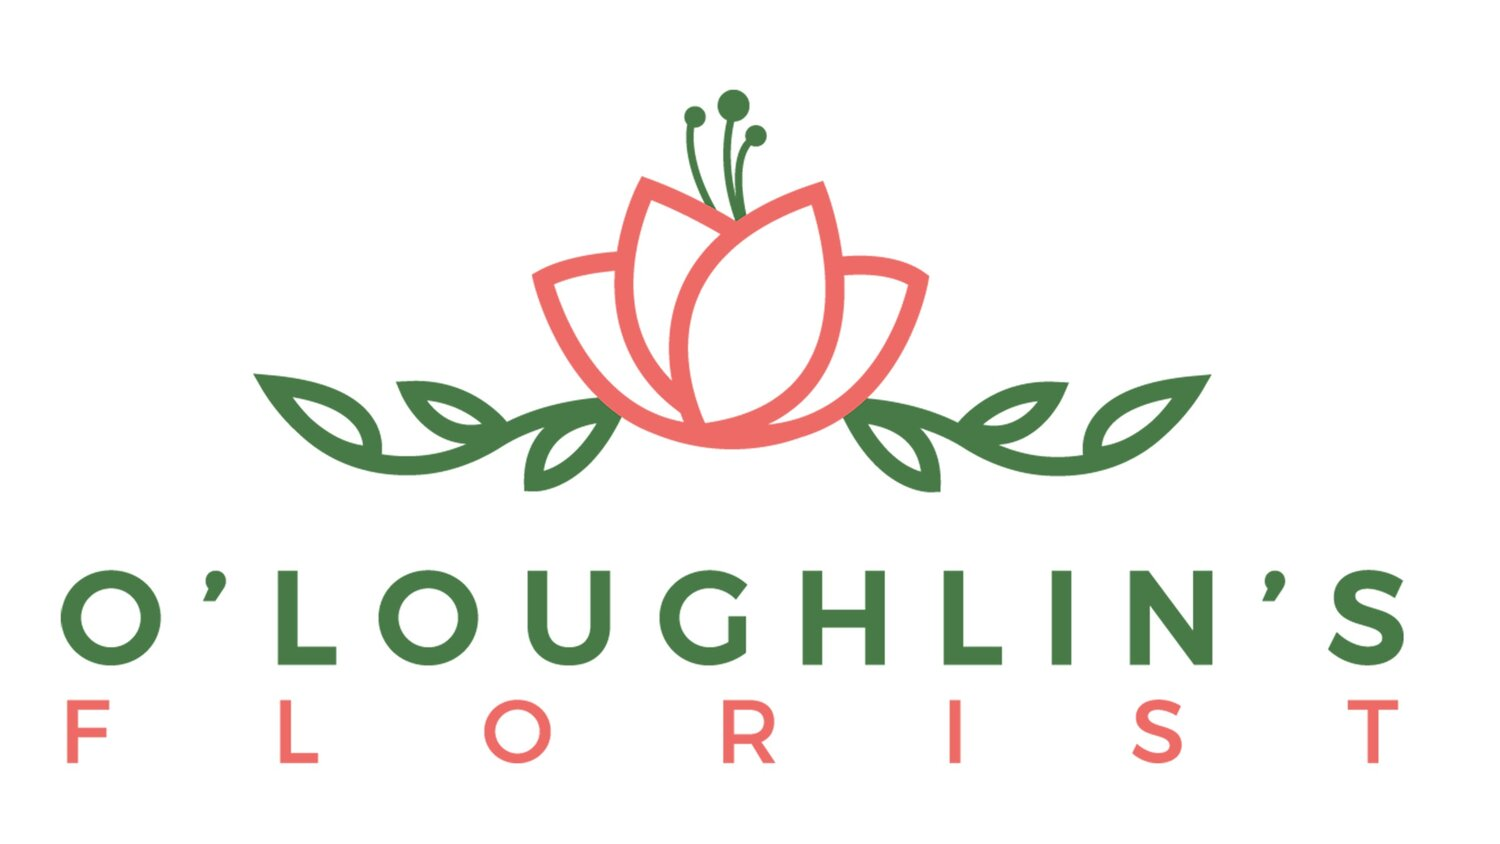 O'loughlins Flosist